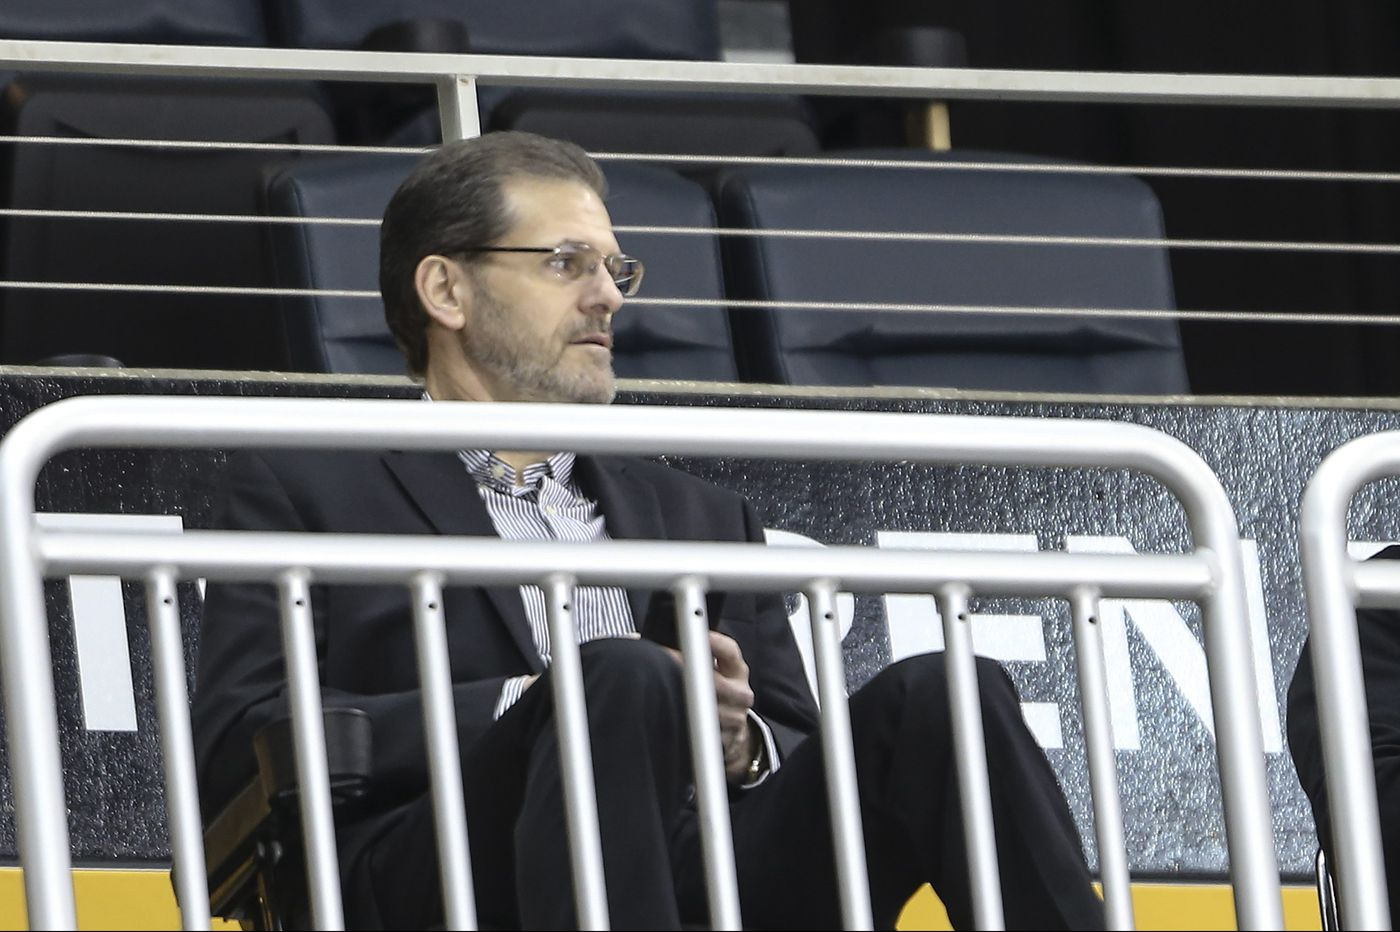 To finish the job, Flyers' Ron Hextall might have to unlatch safety valve beyond draft | Sam Donnellon